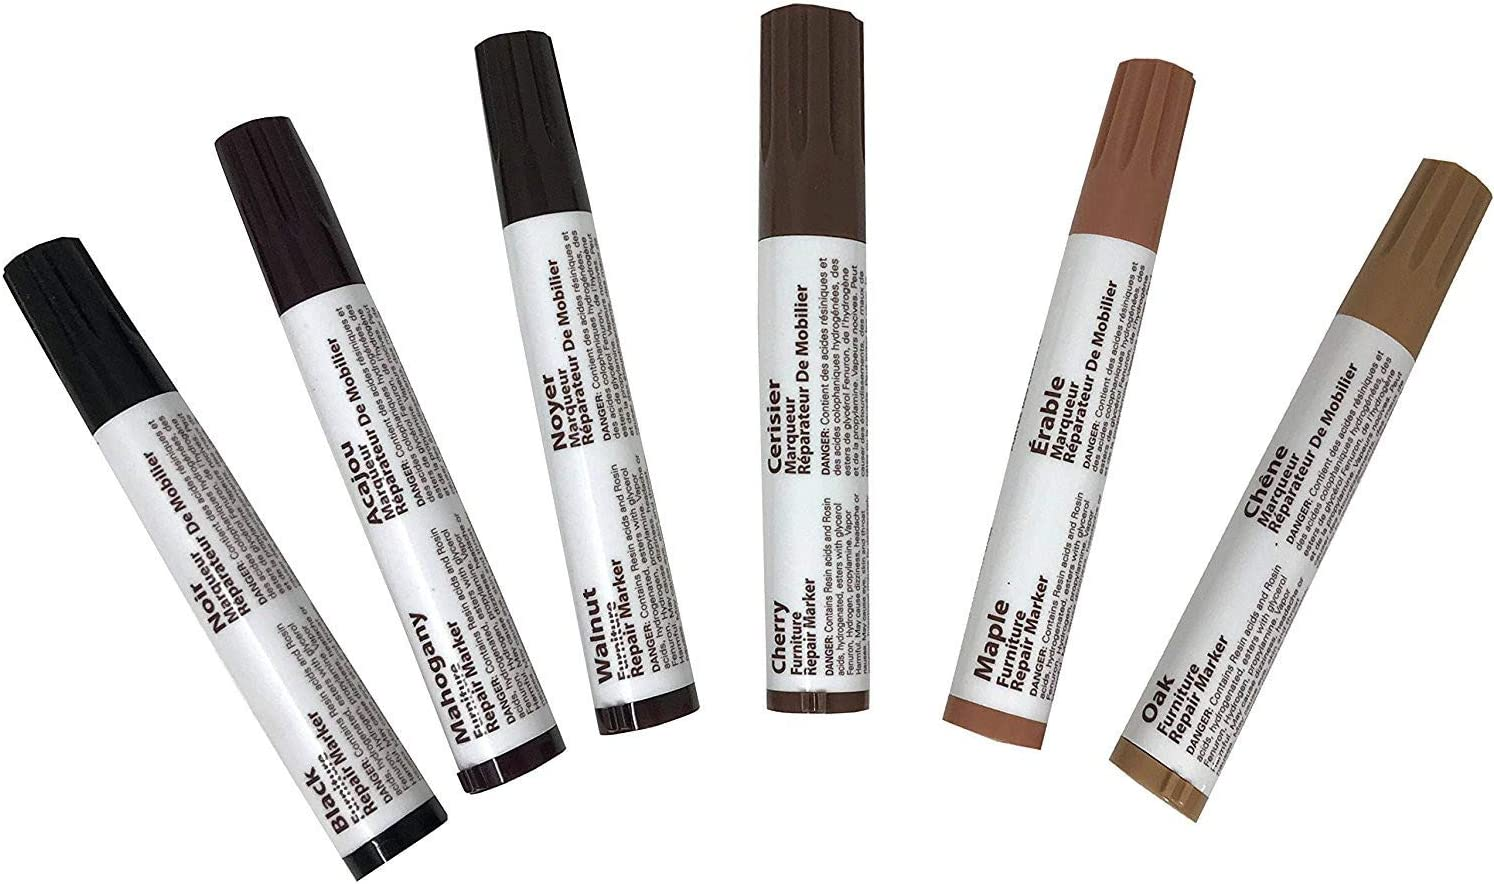 Royal Craft Furniture Repair System, 6 Piece Marker Filler Set for Every Wood Shade - Oak Cherry Mahogany Walnut Maple Black